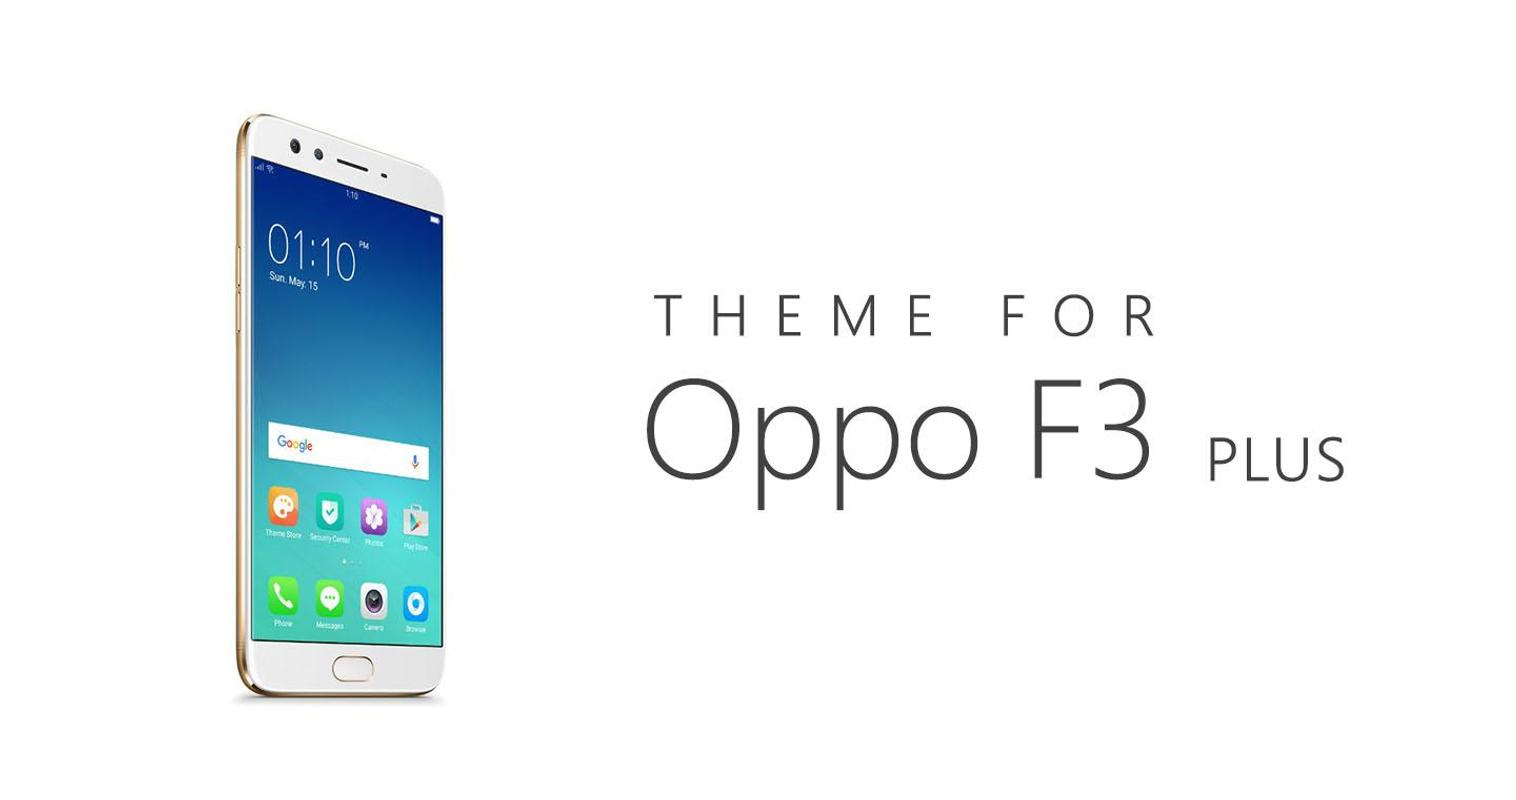 Oppo F3 Plus Wallpapers: Theme For Oppo F3 / F3 Plus For Android